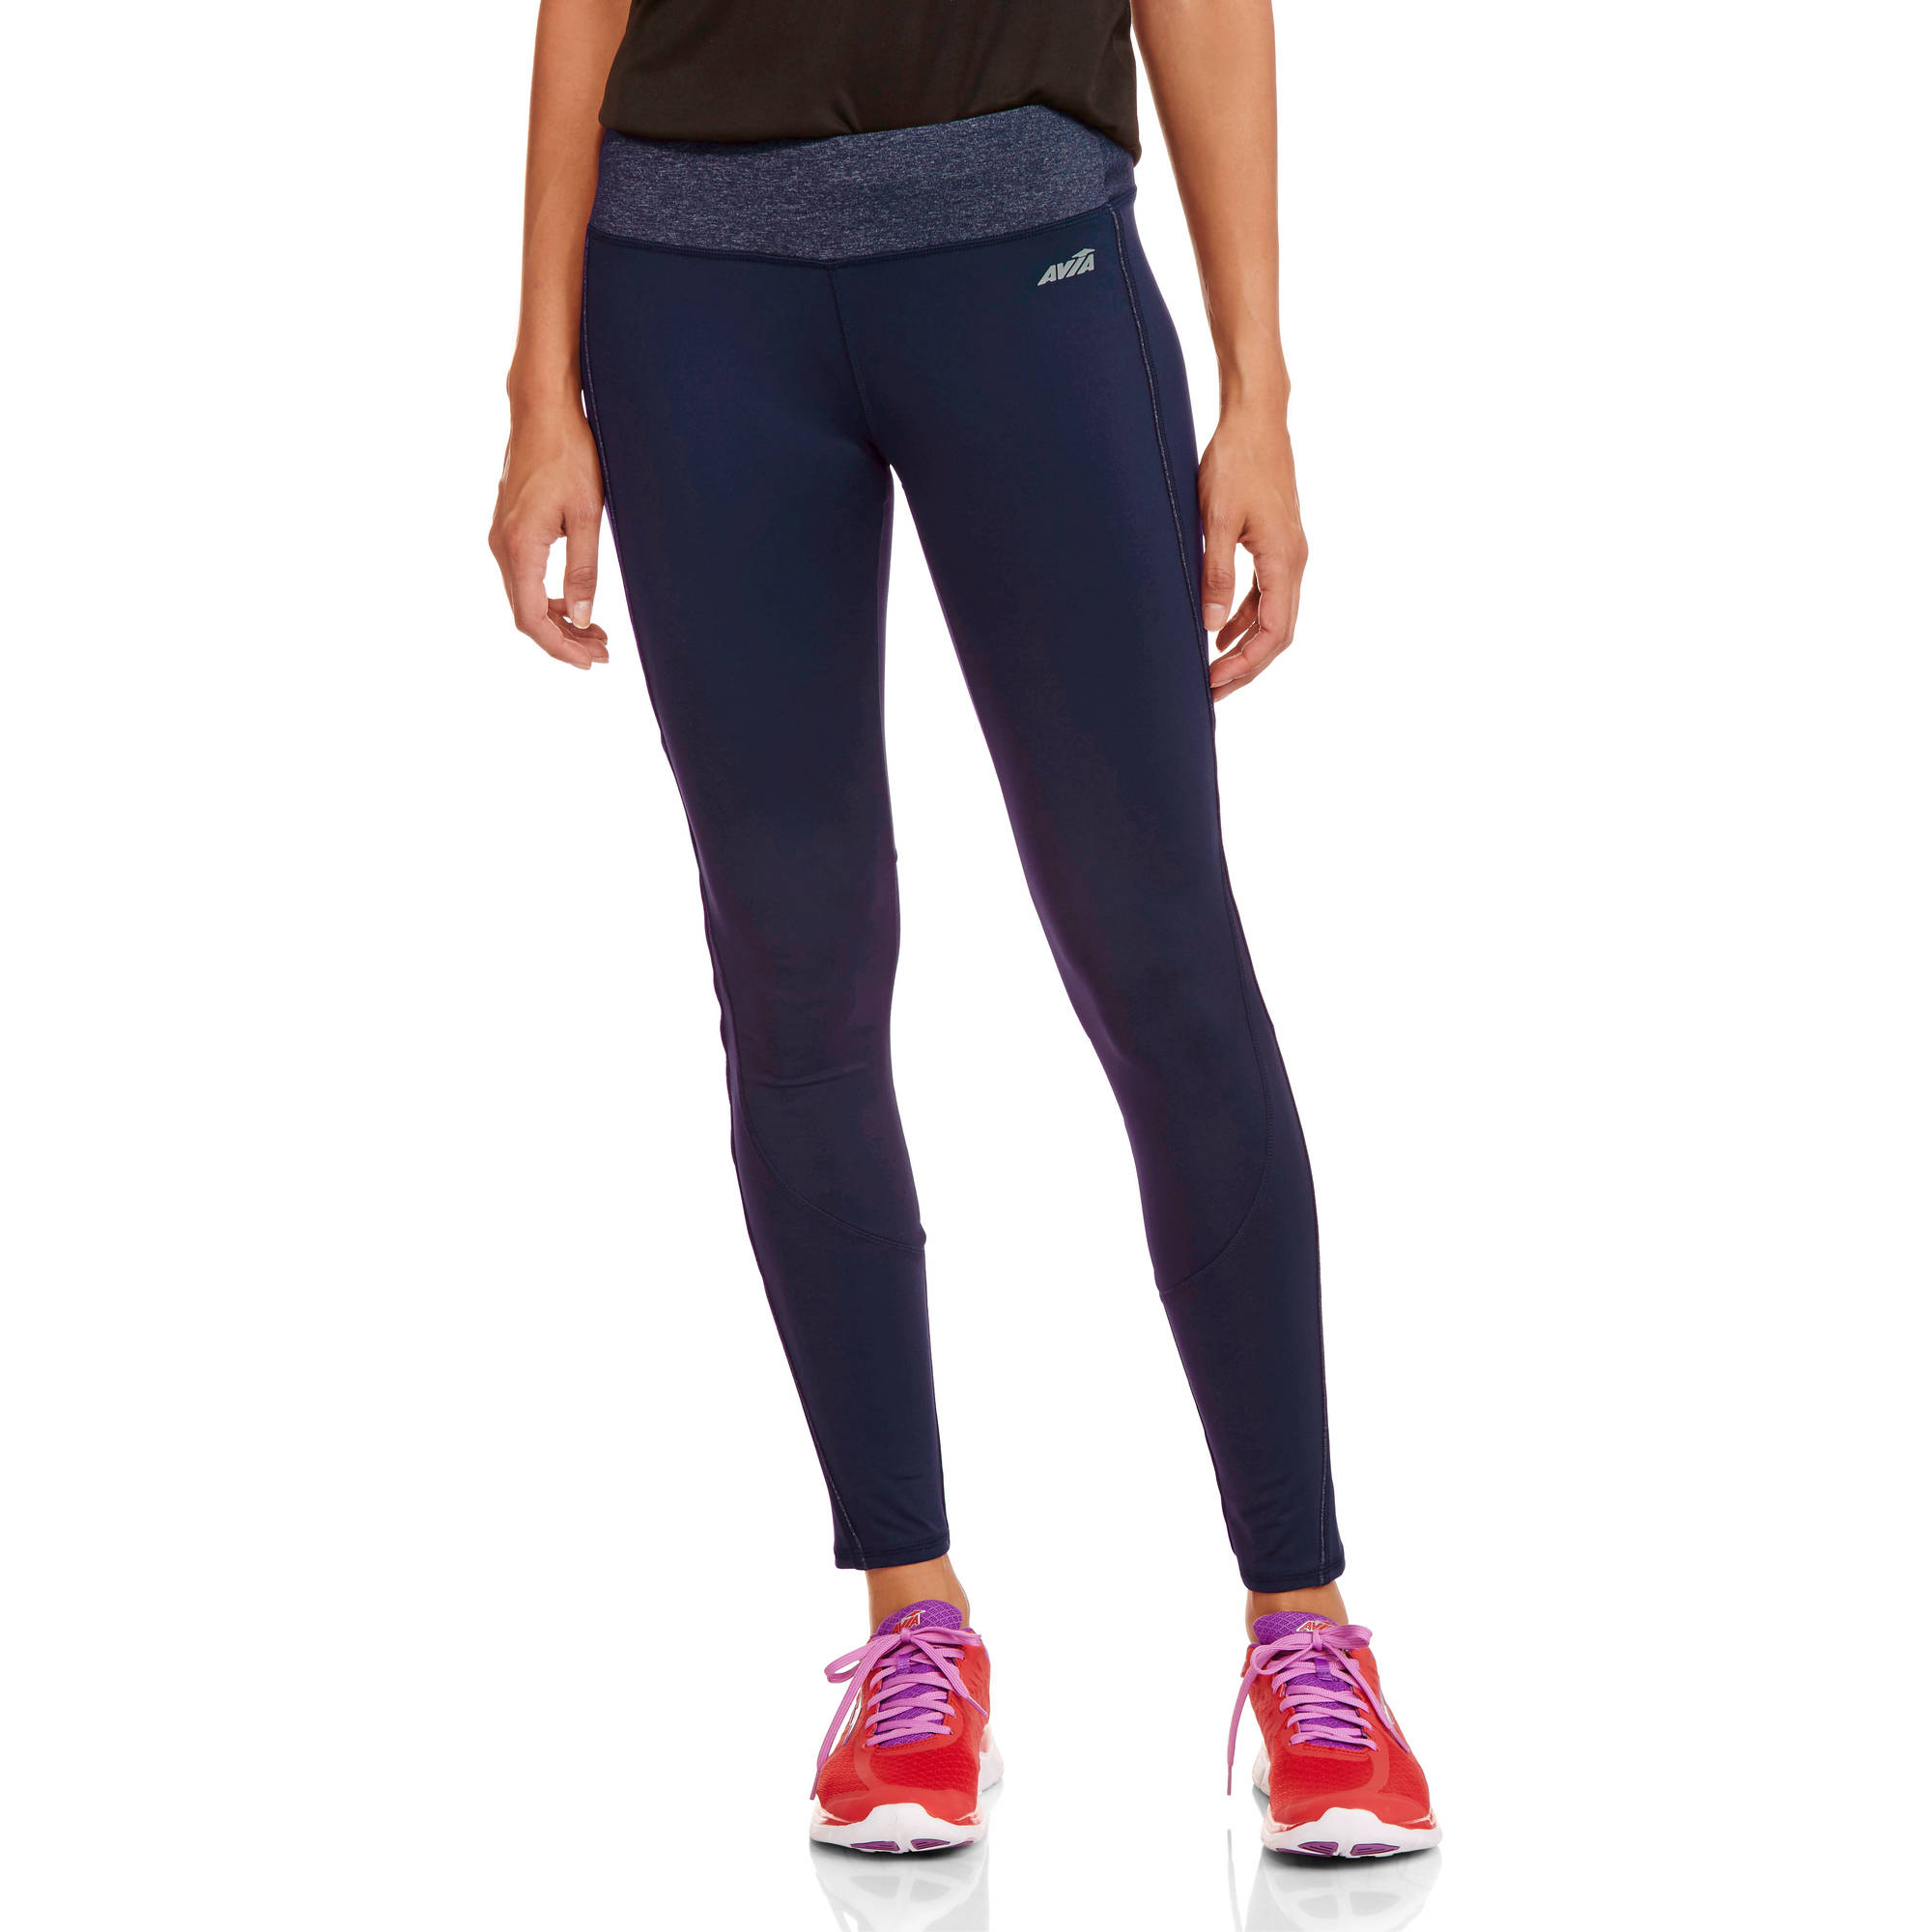 avia exercise pants